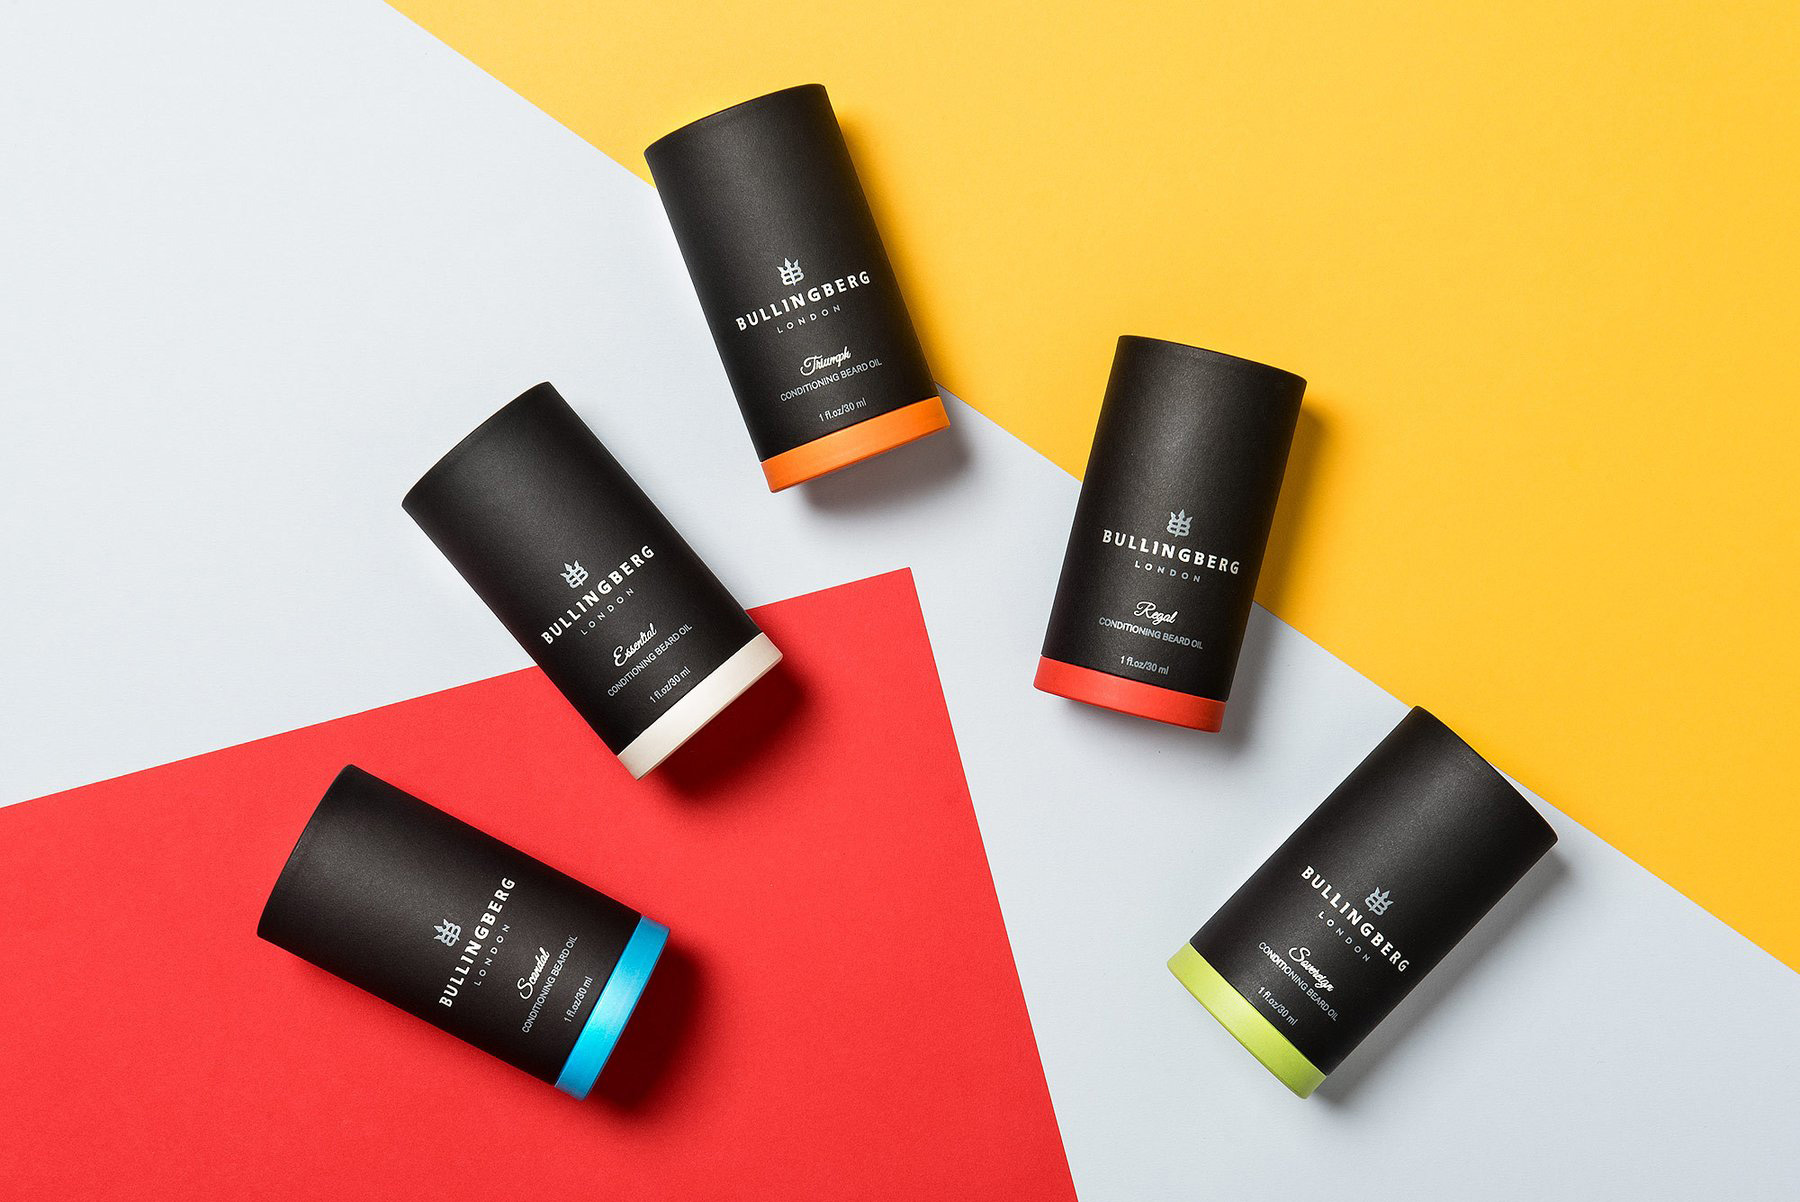 Bullingberg Men's Grooming, Luxury packaging design. Created by packaging design company Flipflop Design.